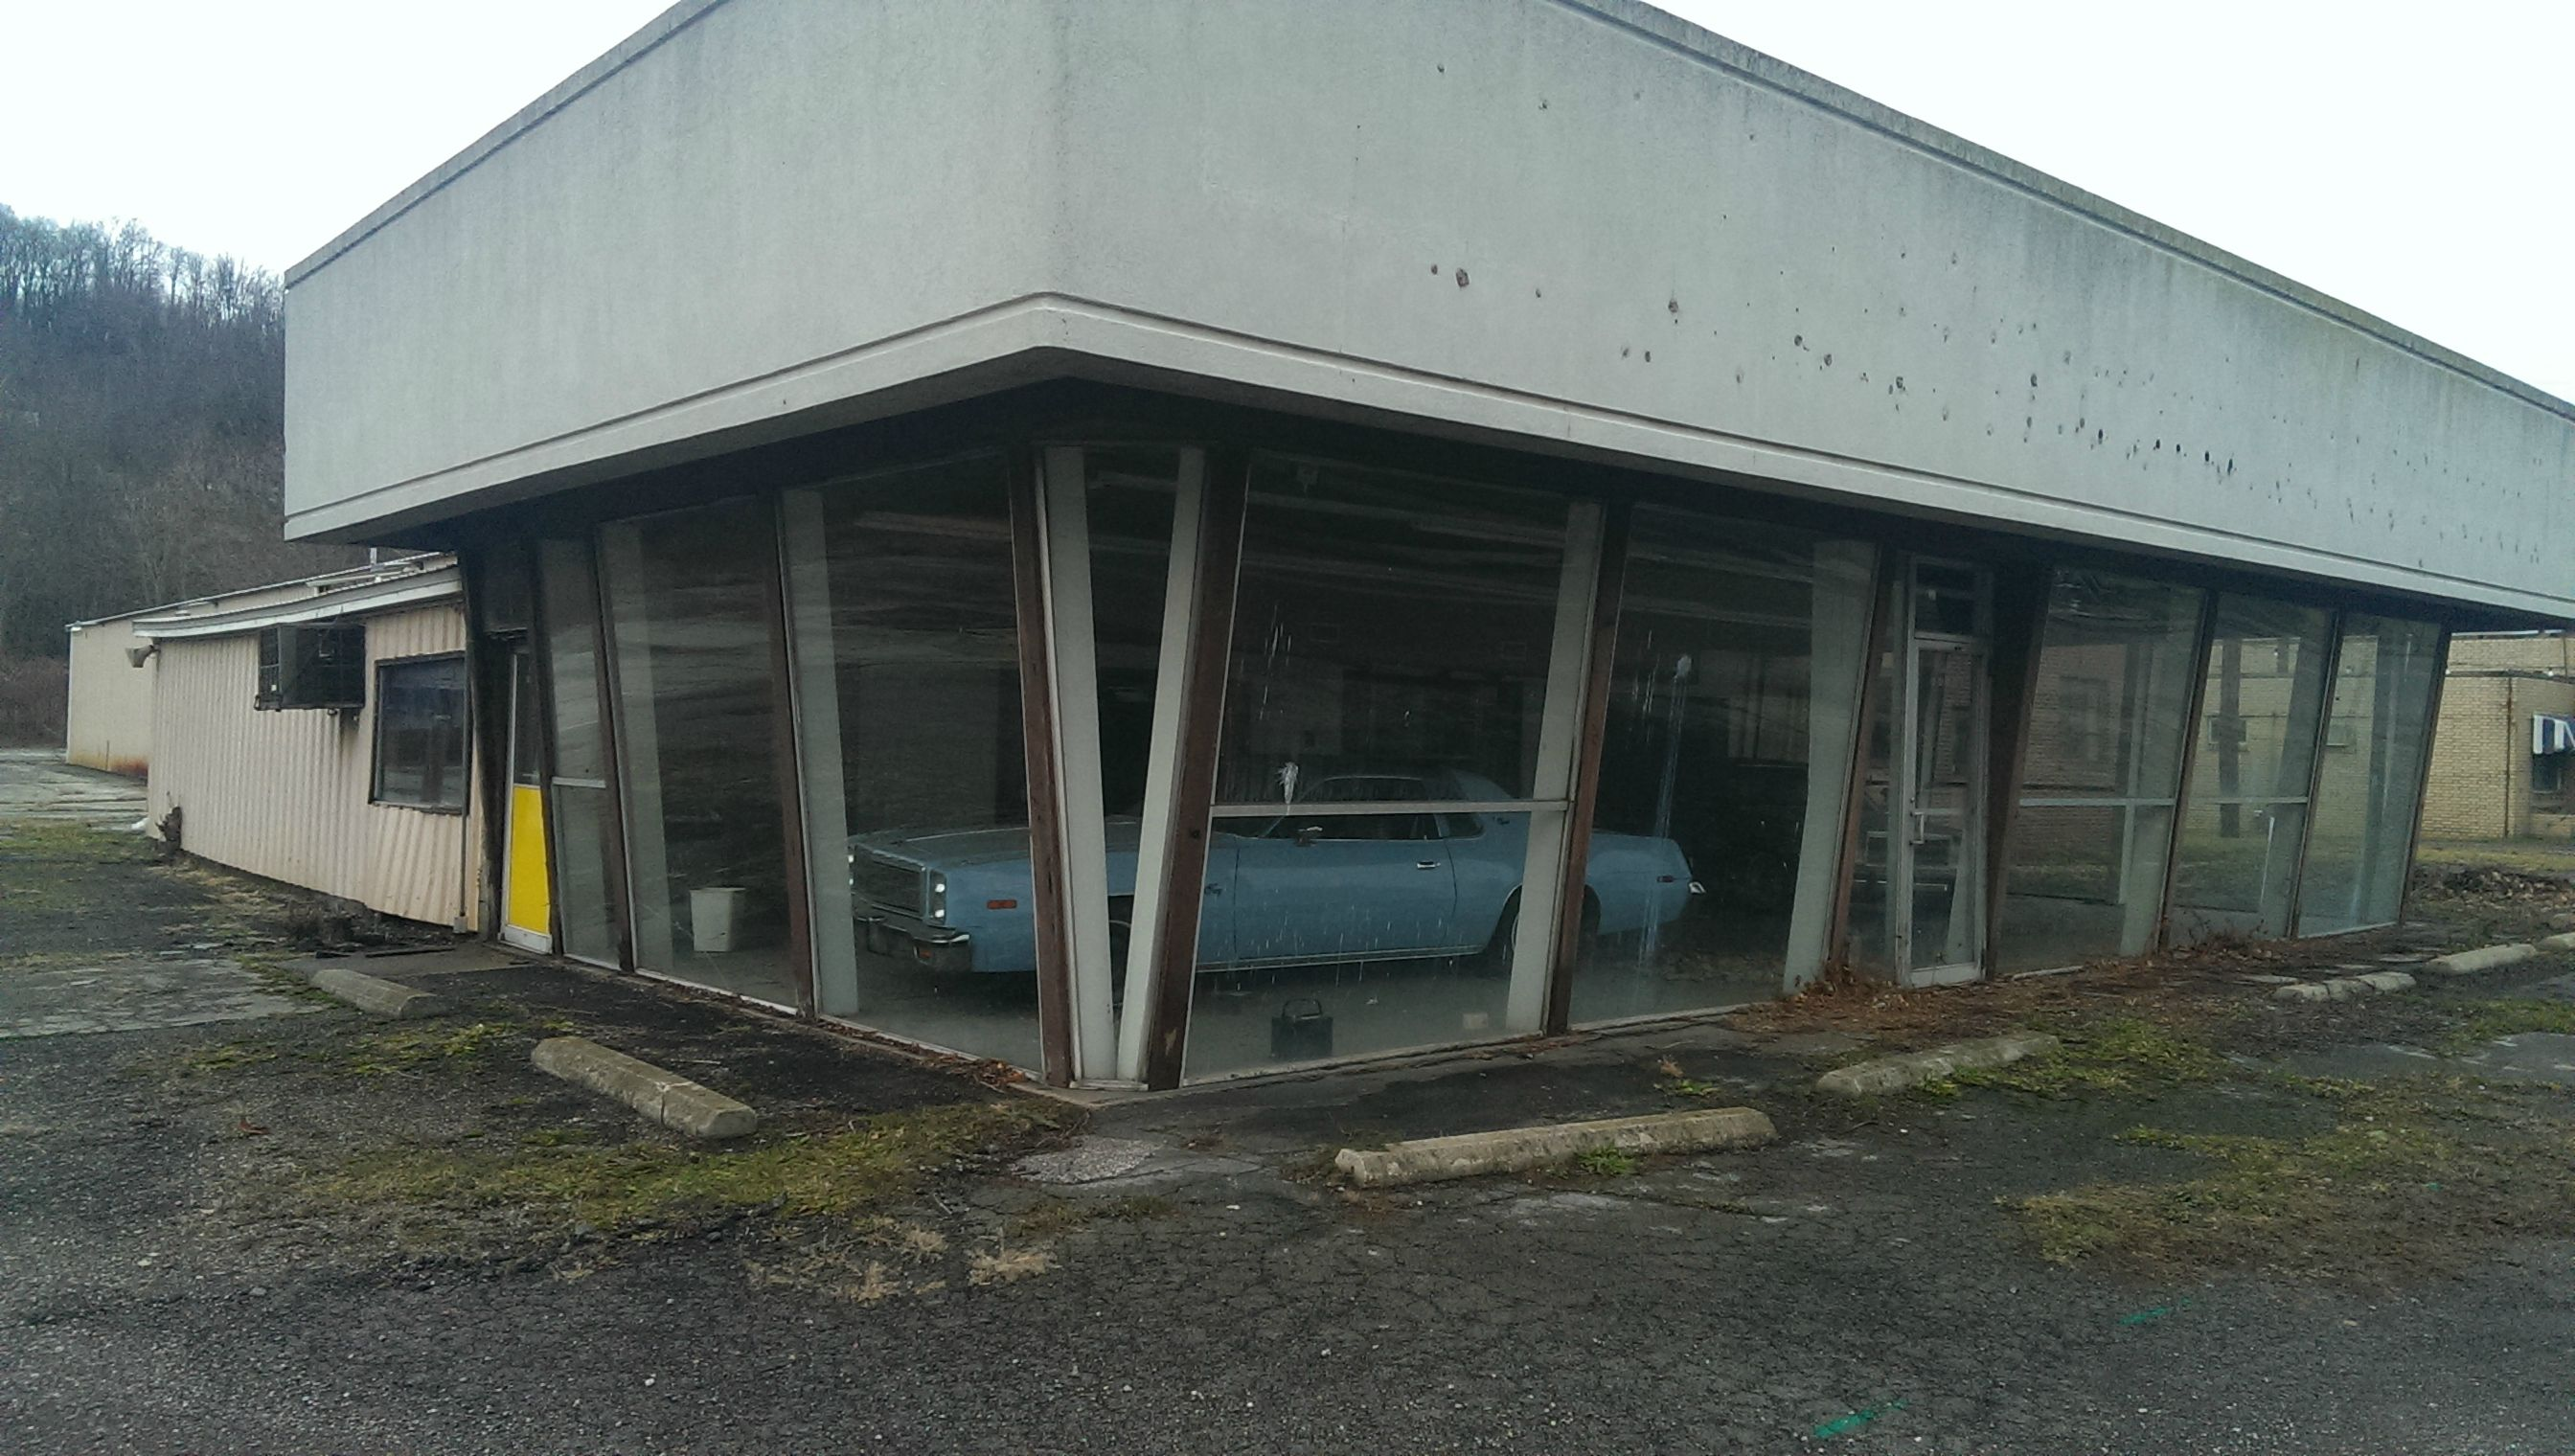 Abandoned vehicles as dealerships ran out of business East motors